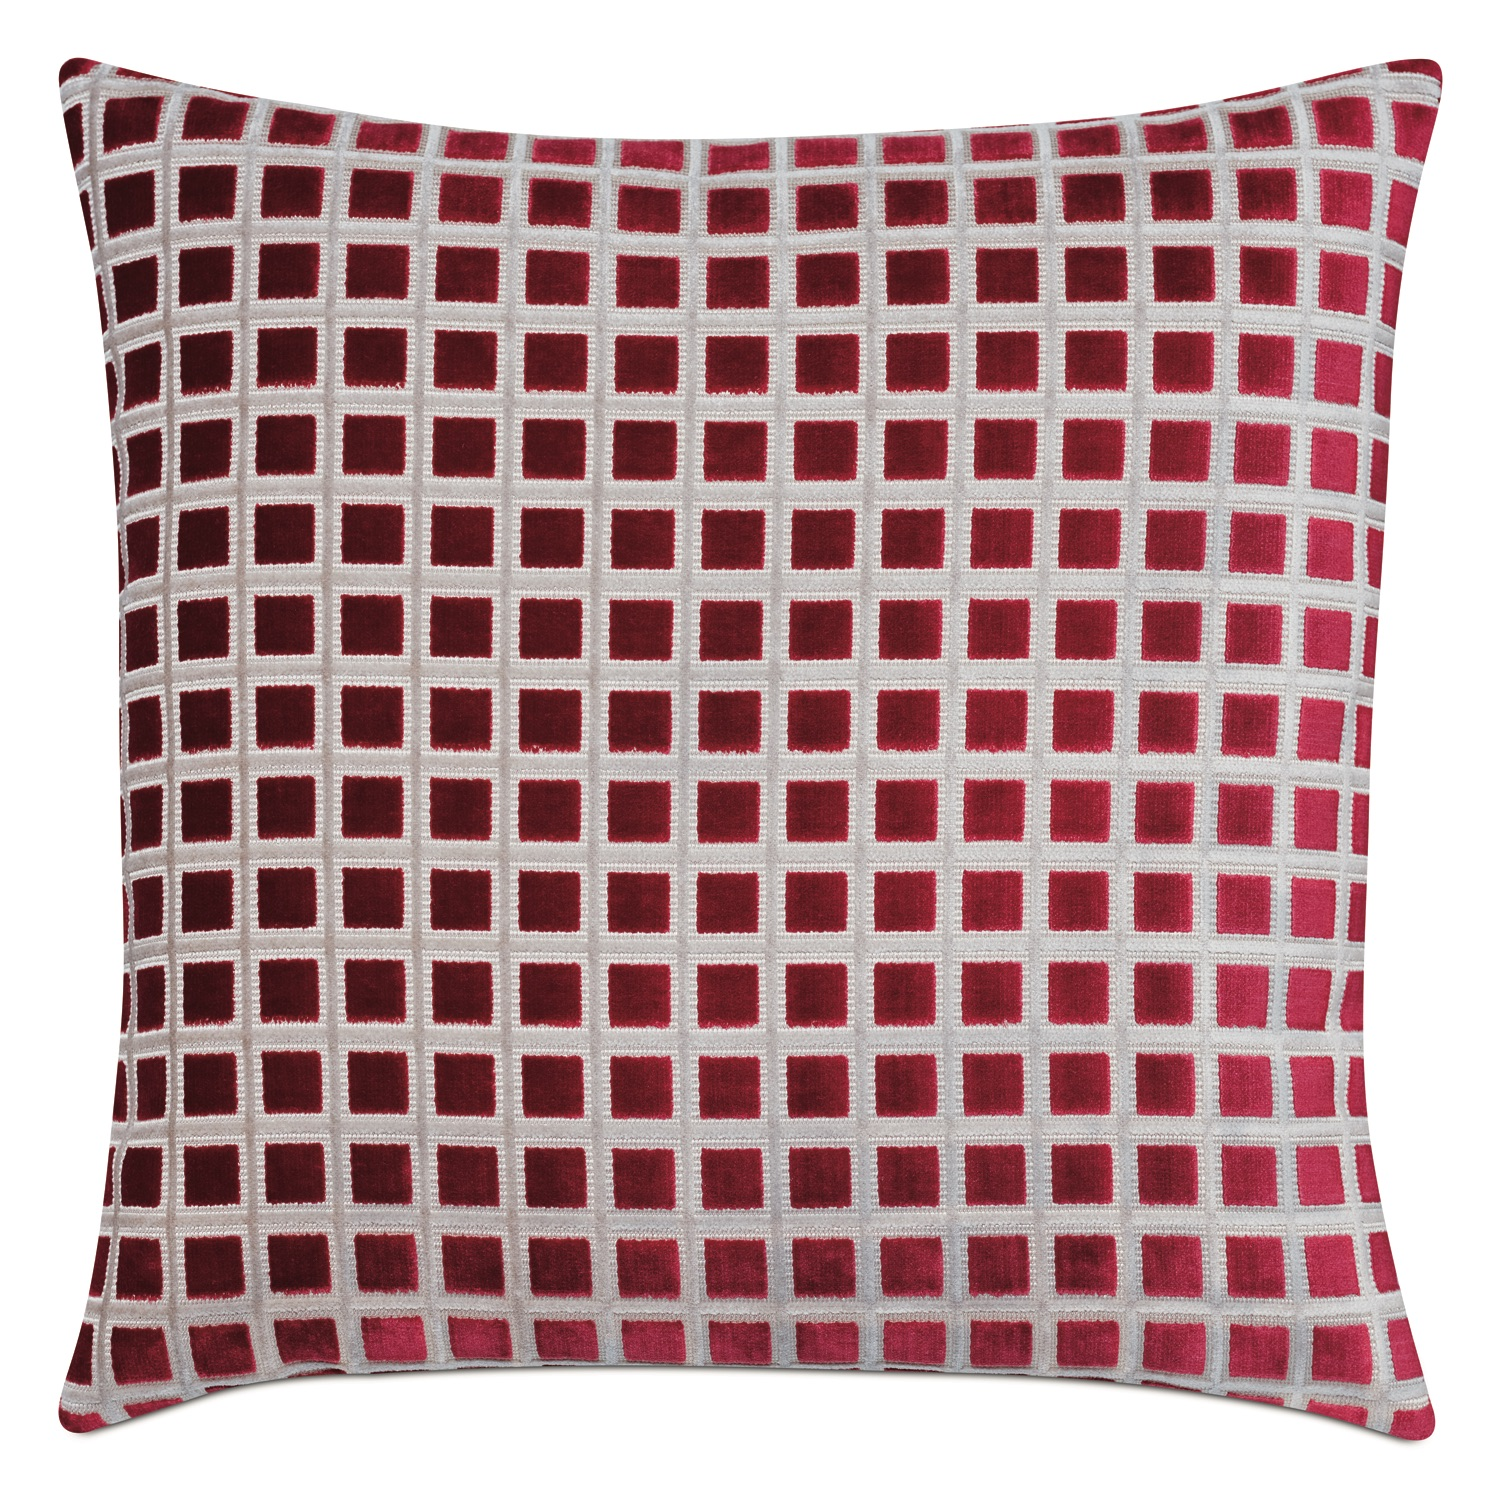 Eastern Accents Stamp Ruby pillow